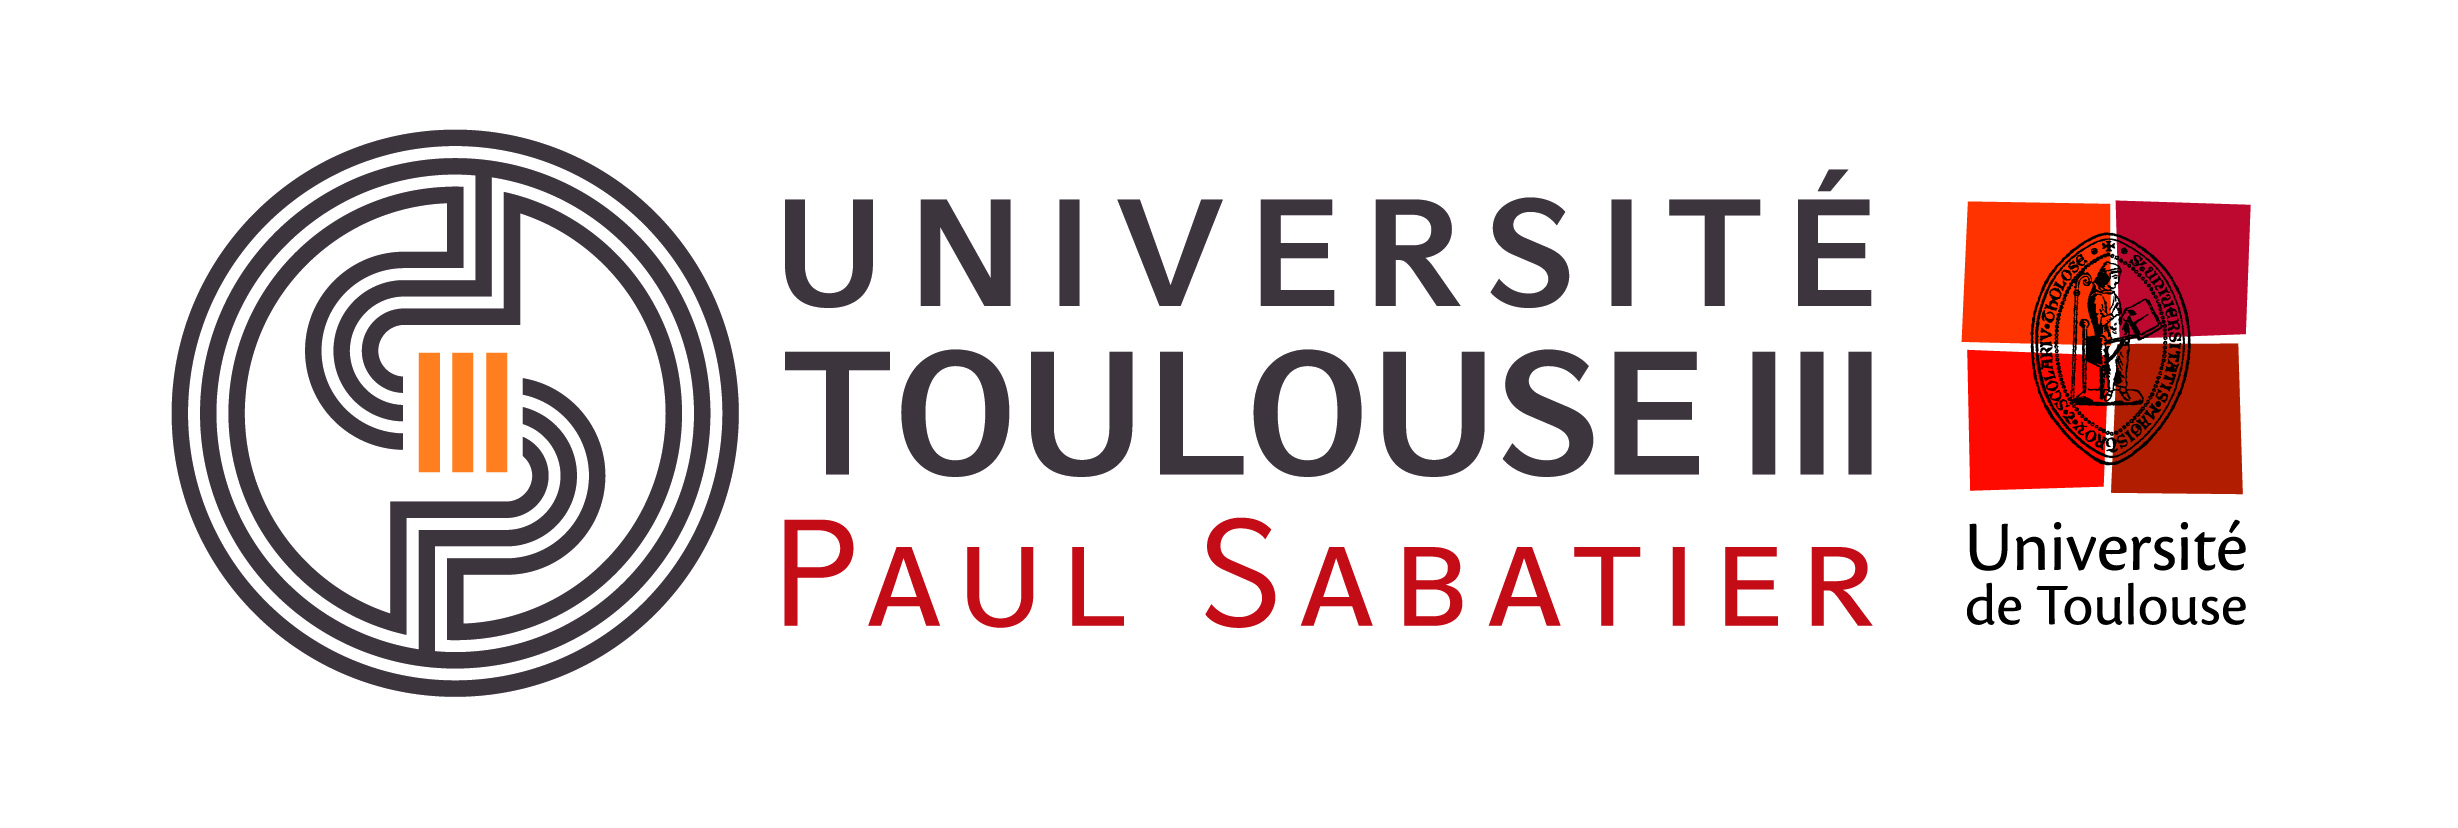 Université Toulouse III - Paul Sabalier